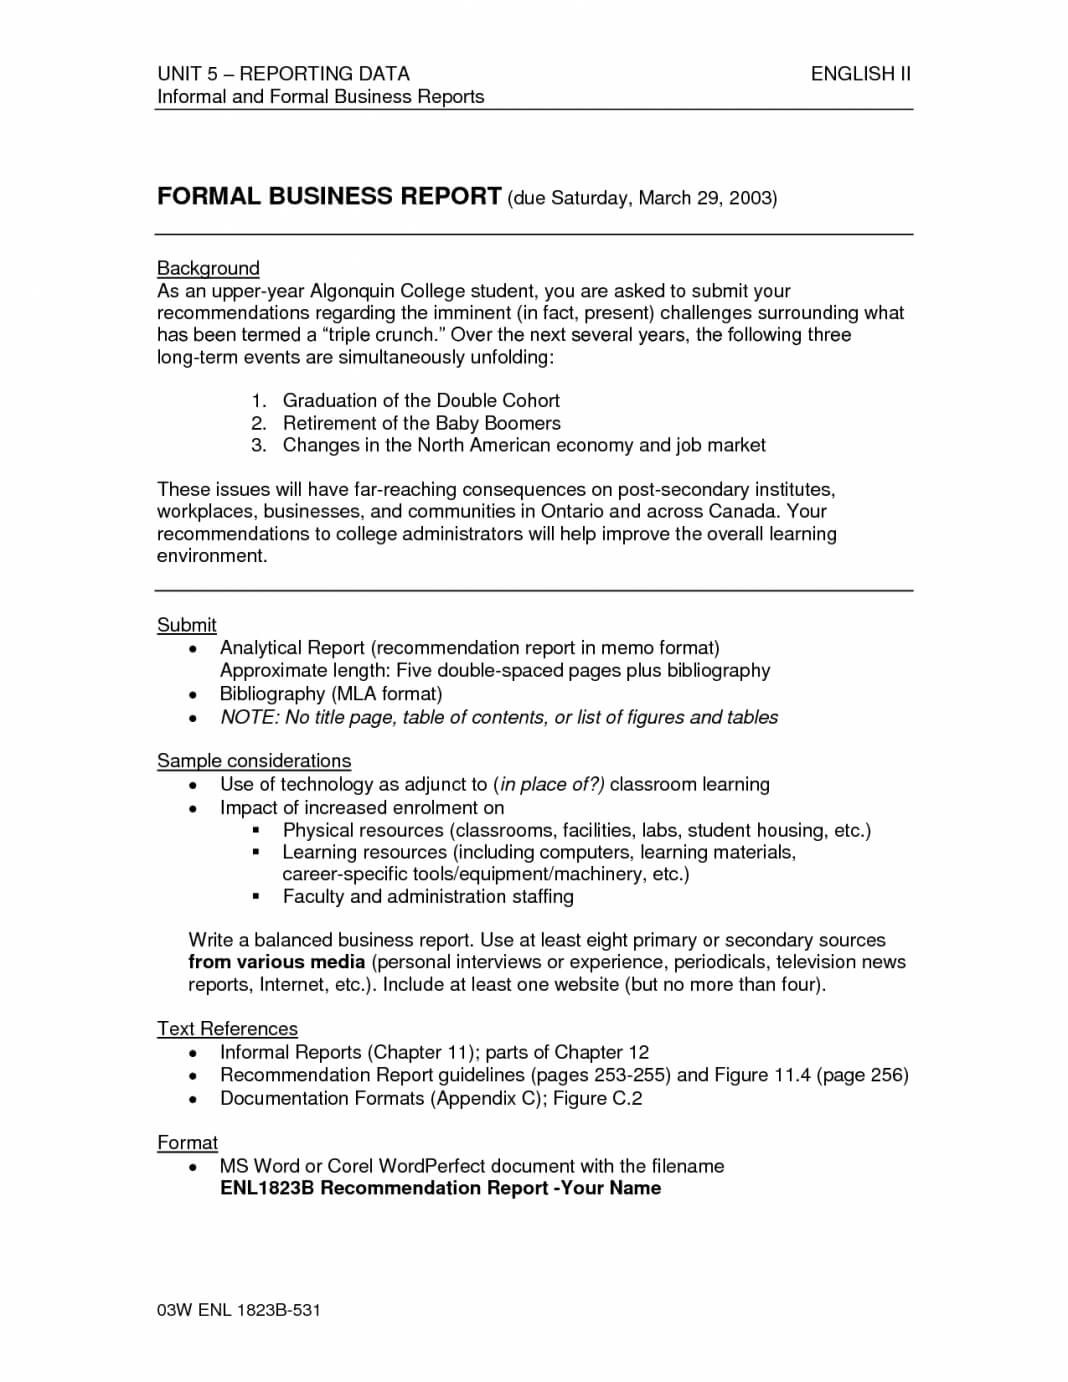 Formal Business Report Format Template Sample Pdf Ple Inside Company Report Format Template Report Writing Format Report Writing Formal Business Non profit organization bylaws template